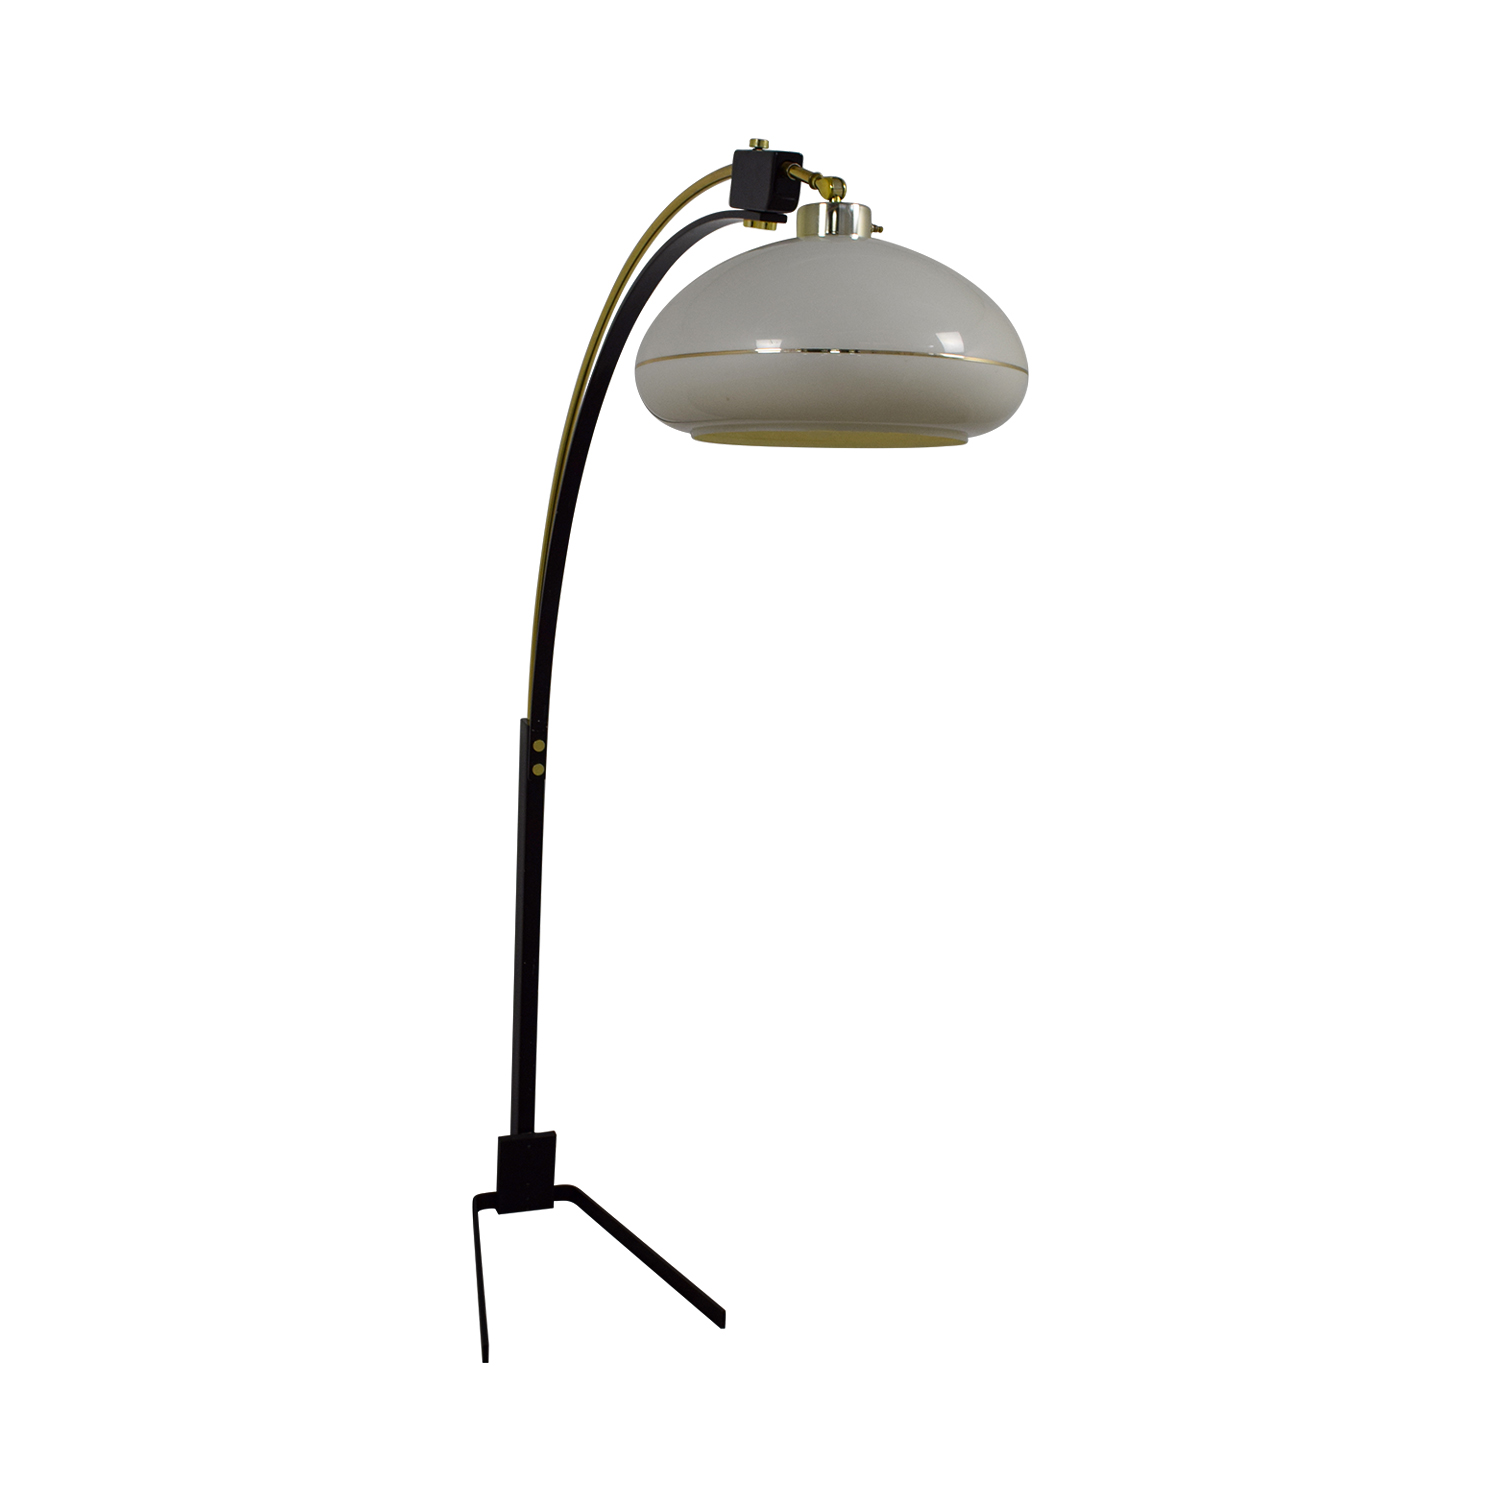 ba3a4168ff5e 58% OFF - Mid-Century Arched Floor Lamp   Decor